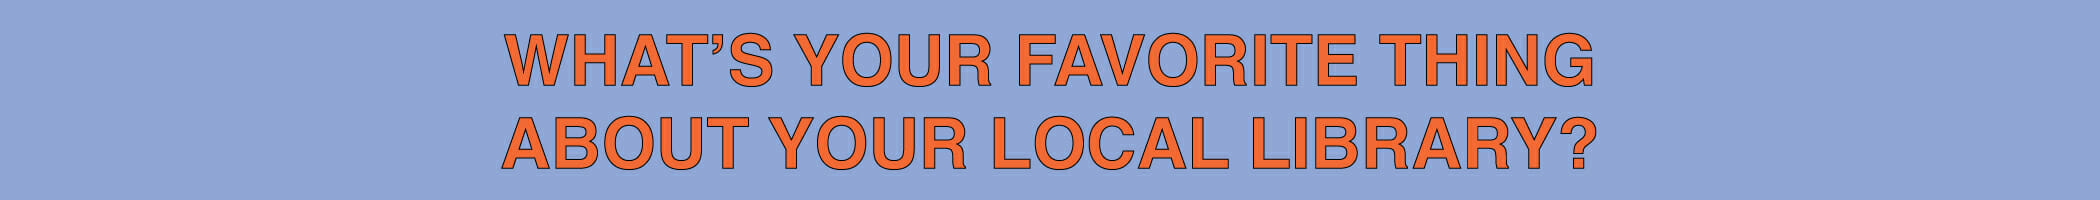 What's your favorite thing about your local library?